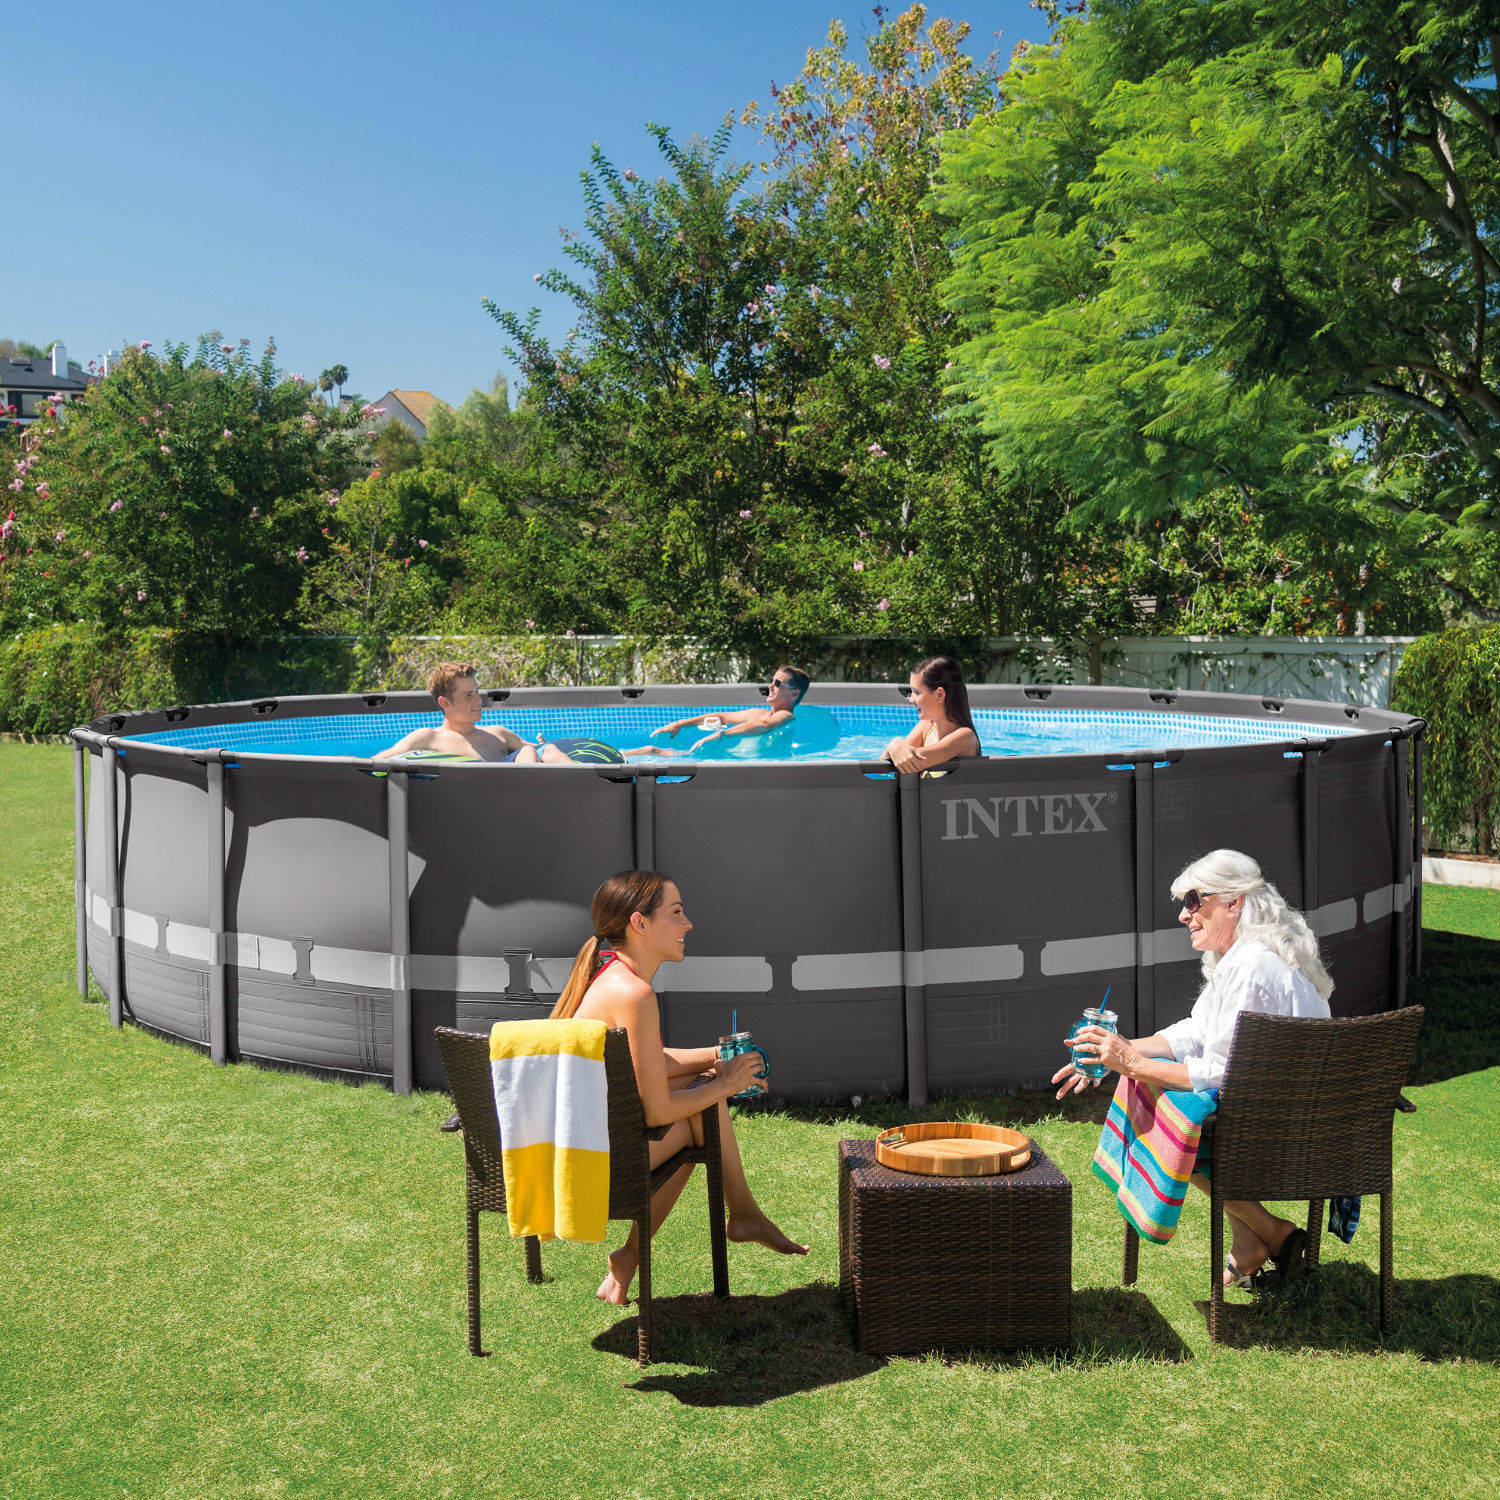 """Intex 22' x 52"""" Ultra Frame Above Ground Swimming Pool with Filter Pump, BOX 1 OF 2 by INTEX TRADING LTD"""